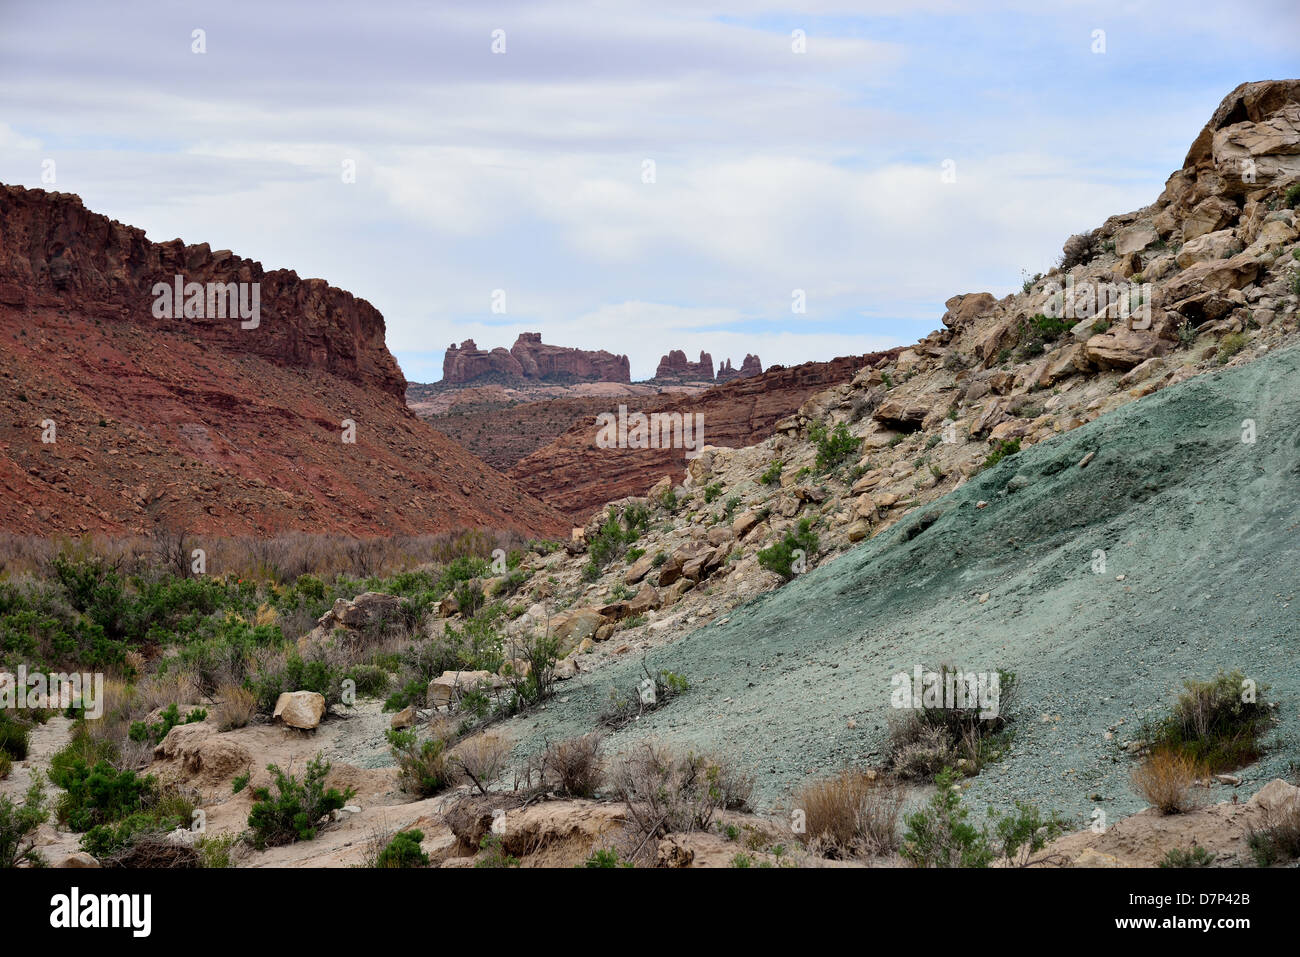 Multi-colored rock formation in the Arches National Park, Moab, Utah, USA. - Stock Image